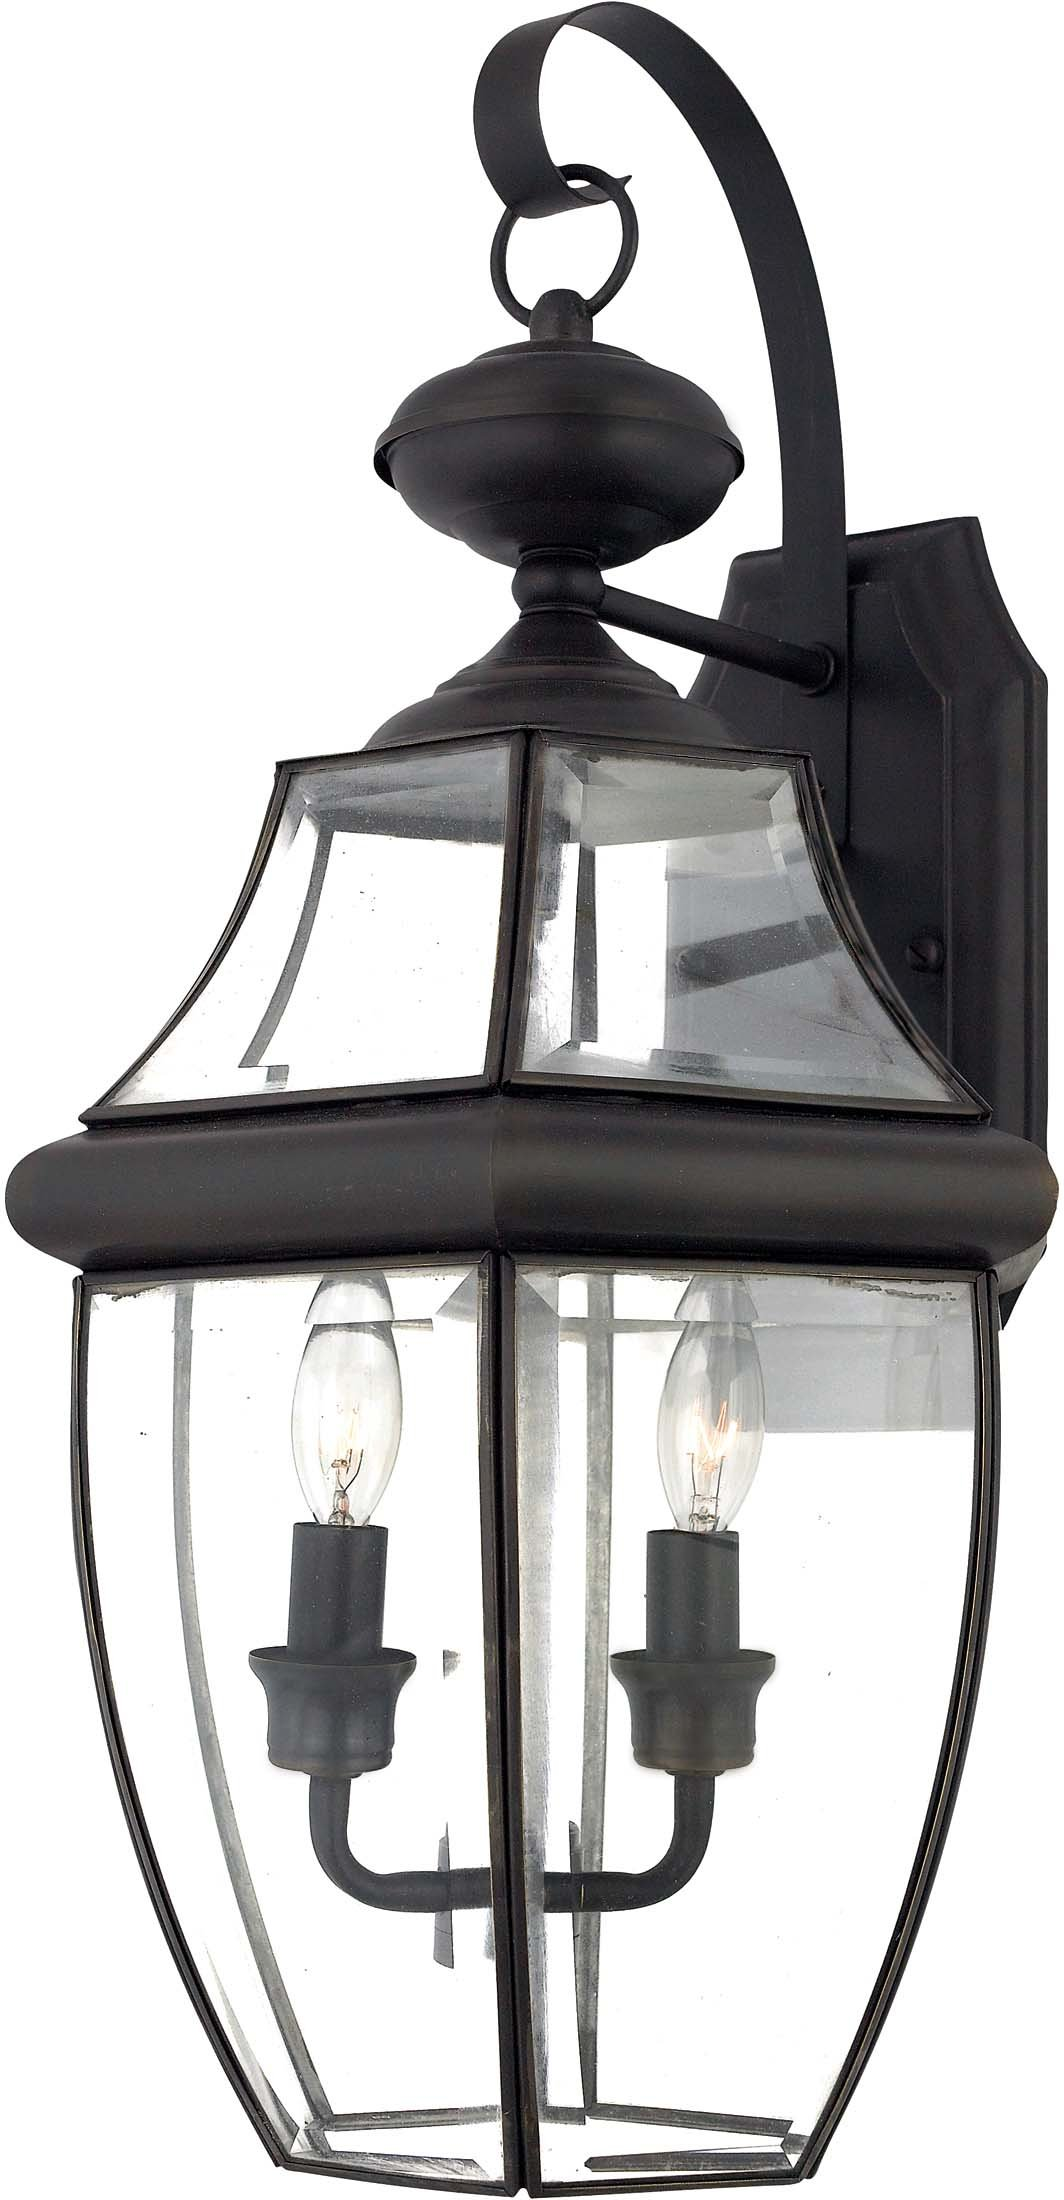 Quoizel NY8317Z 2-Light Newbury Outdoor Lantern in Medici Bronze